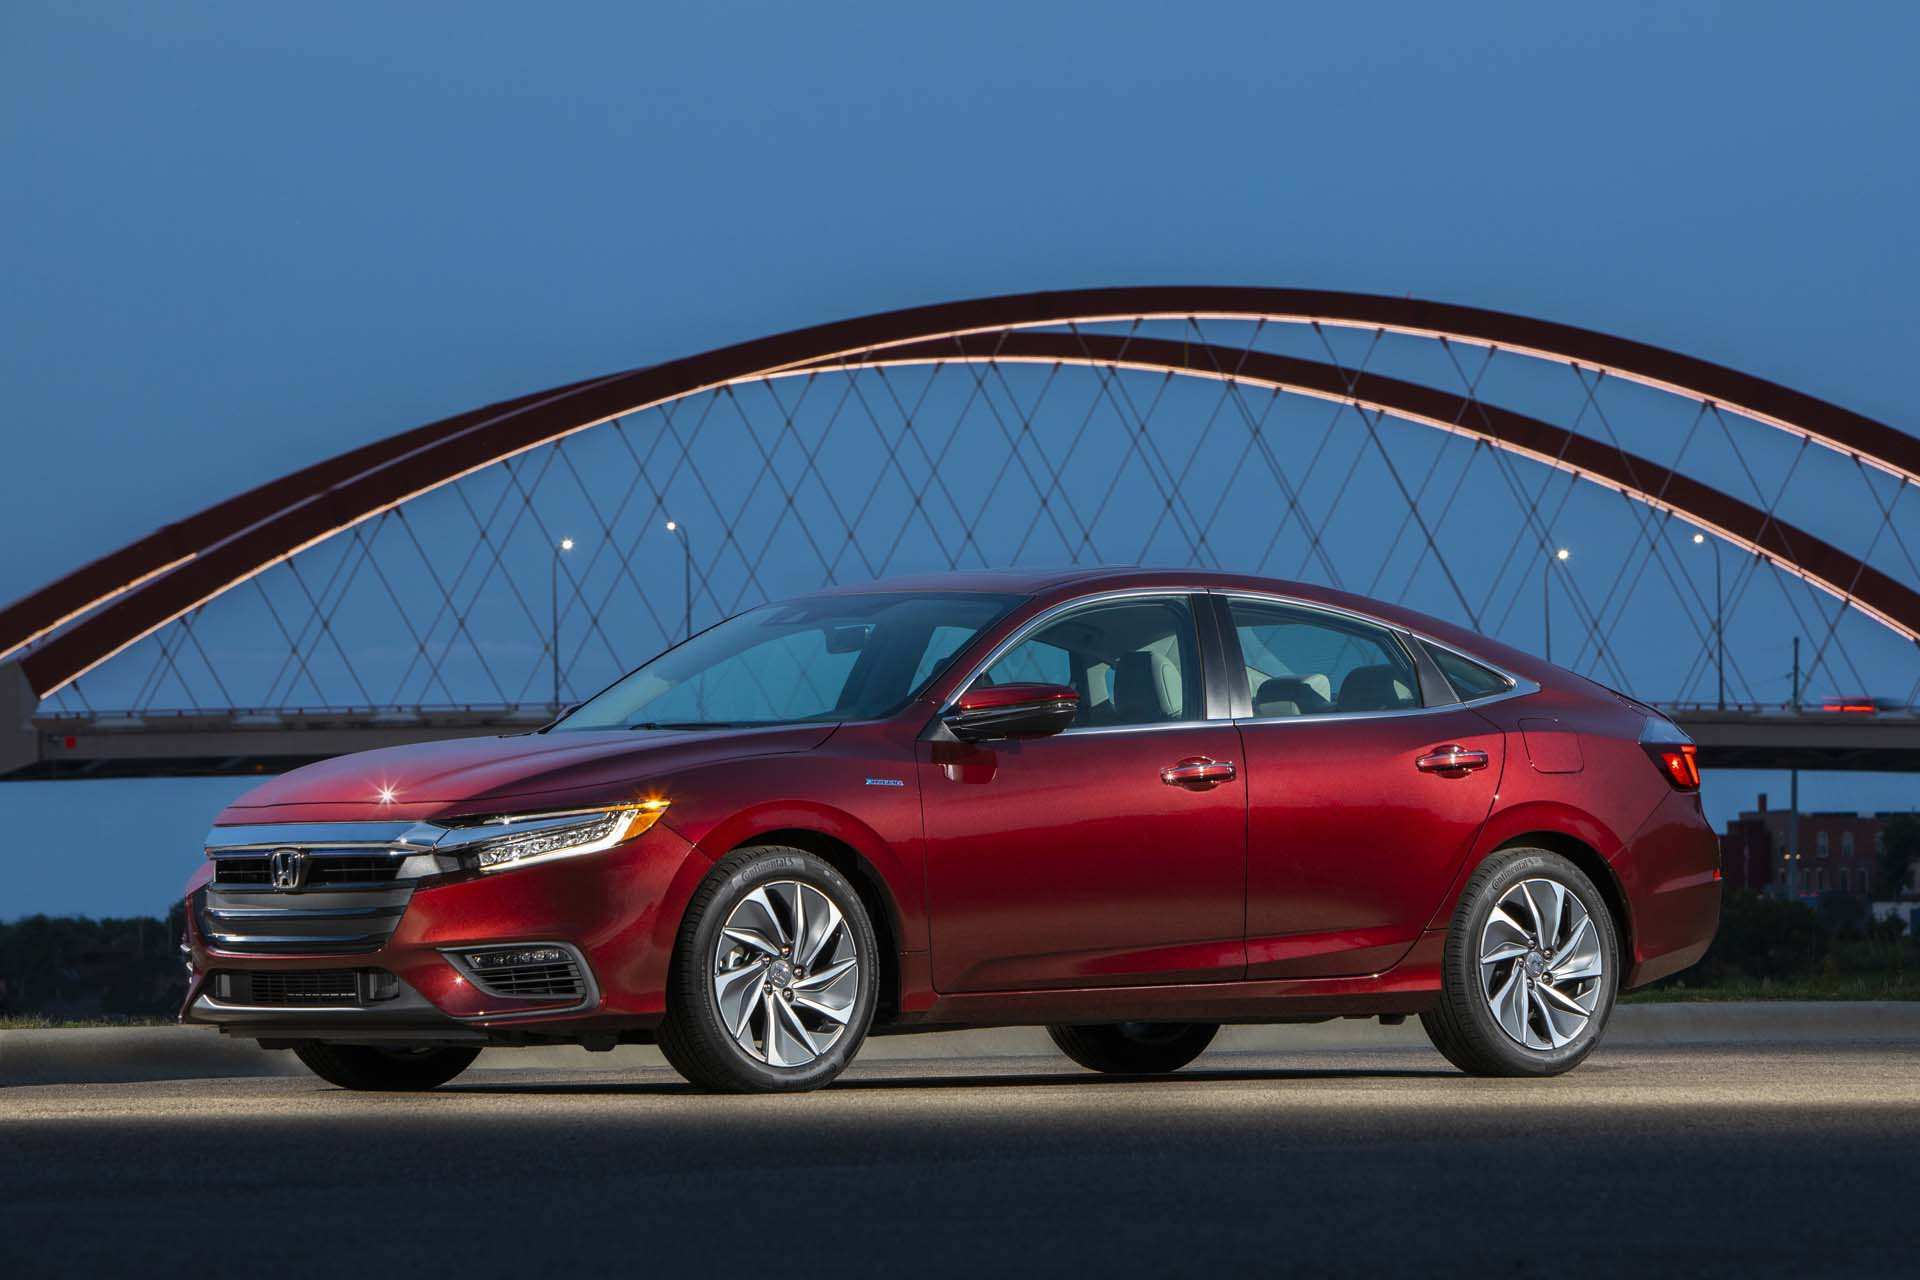 92 The Best 2020 Honda Insight Performance And New Engine